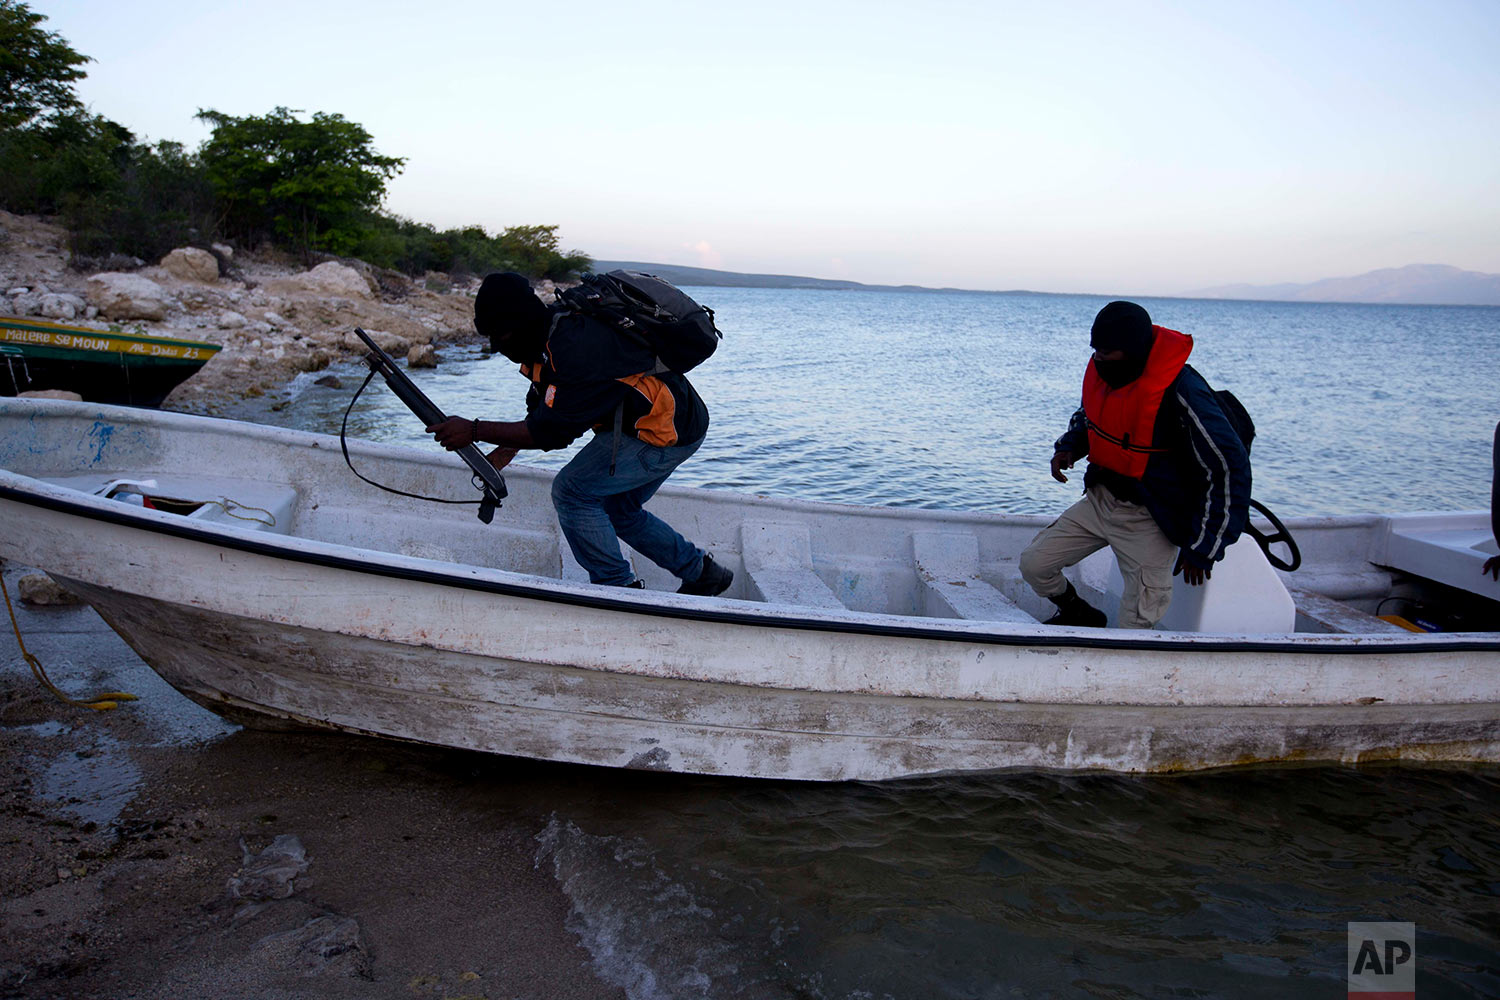 In this April 17, 2018 photo, two Taino Aqua Fish farm security guards return to shore at dawn after sleeping on the lake in two different locations to keep watch over fish cages on Lake Azuei in Fond Parisien, Haiti. The company has 60 employees, including security guards who keep watch during the night to keep thieves from raiding the cages. (AP Photo/Dieu Nalio Chery)